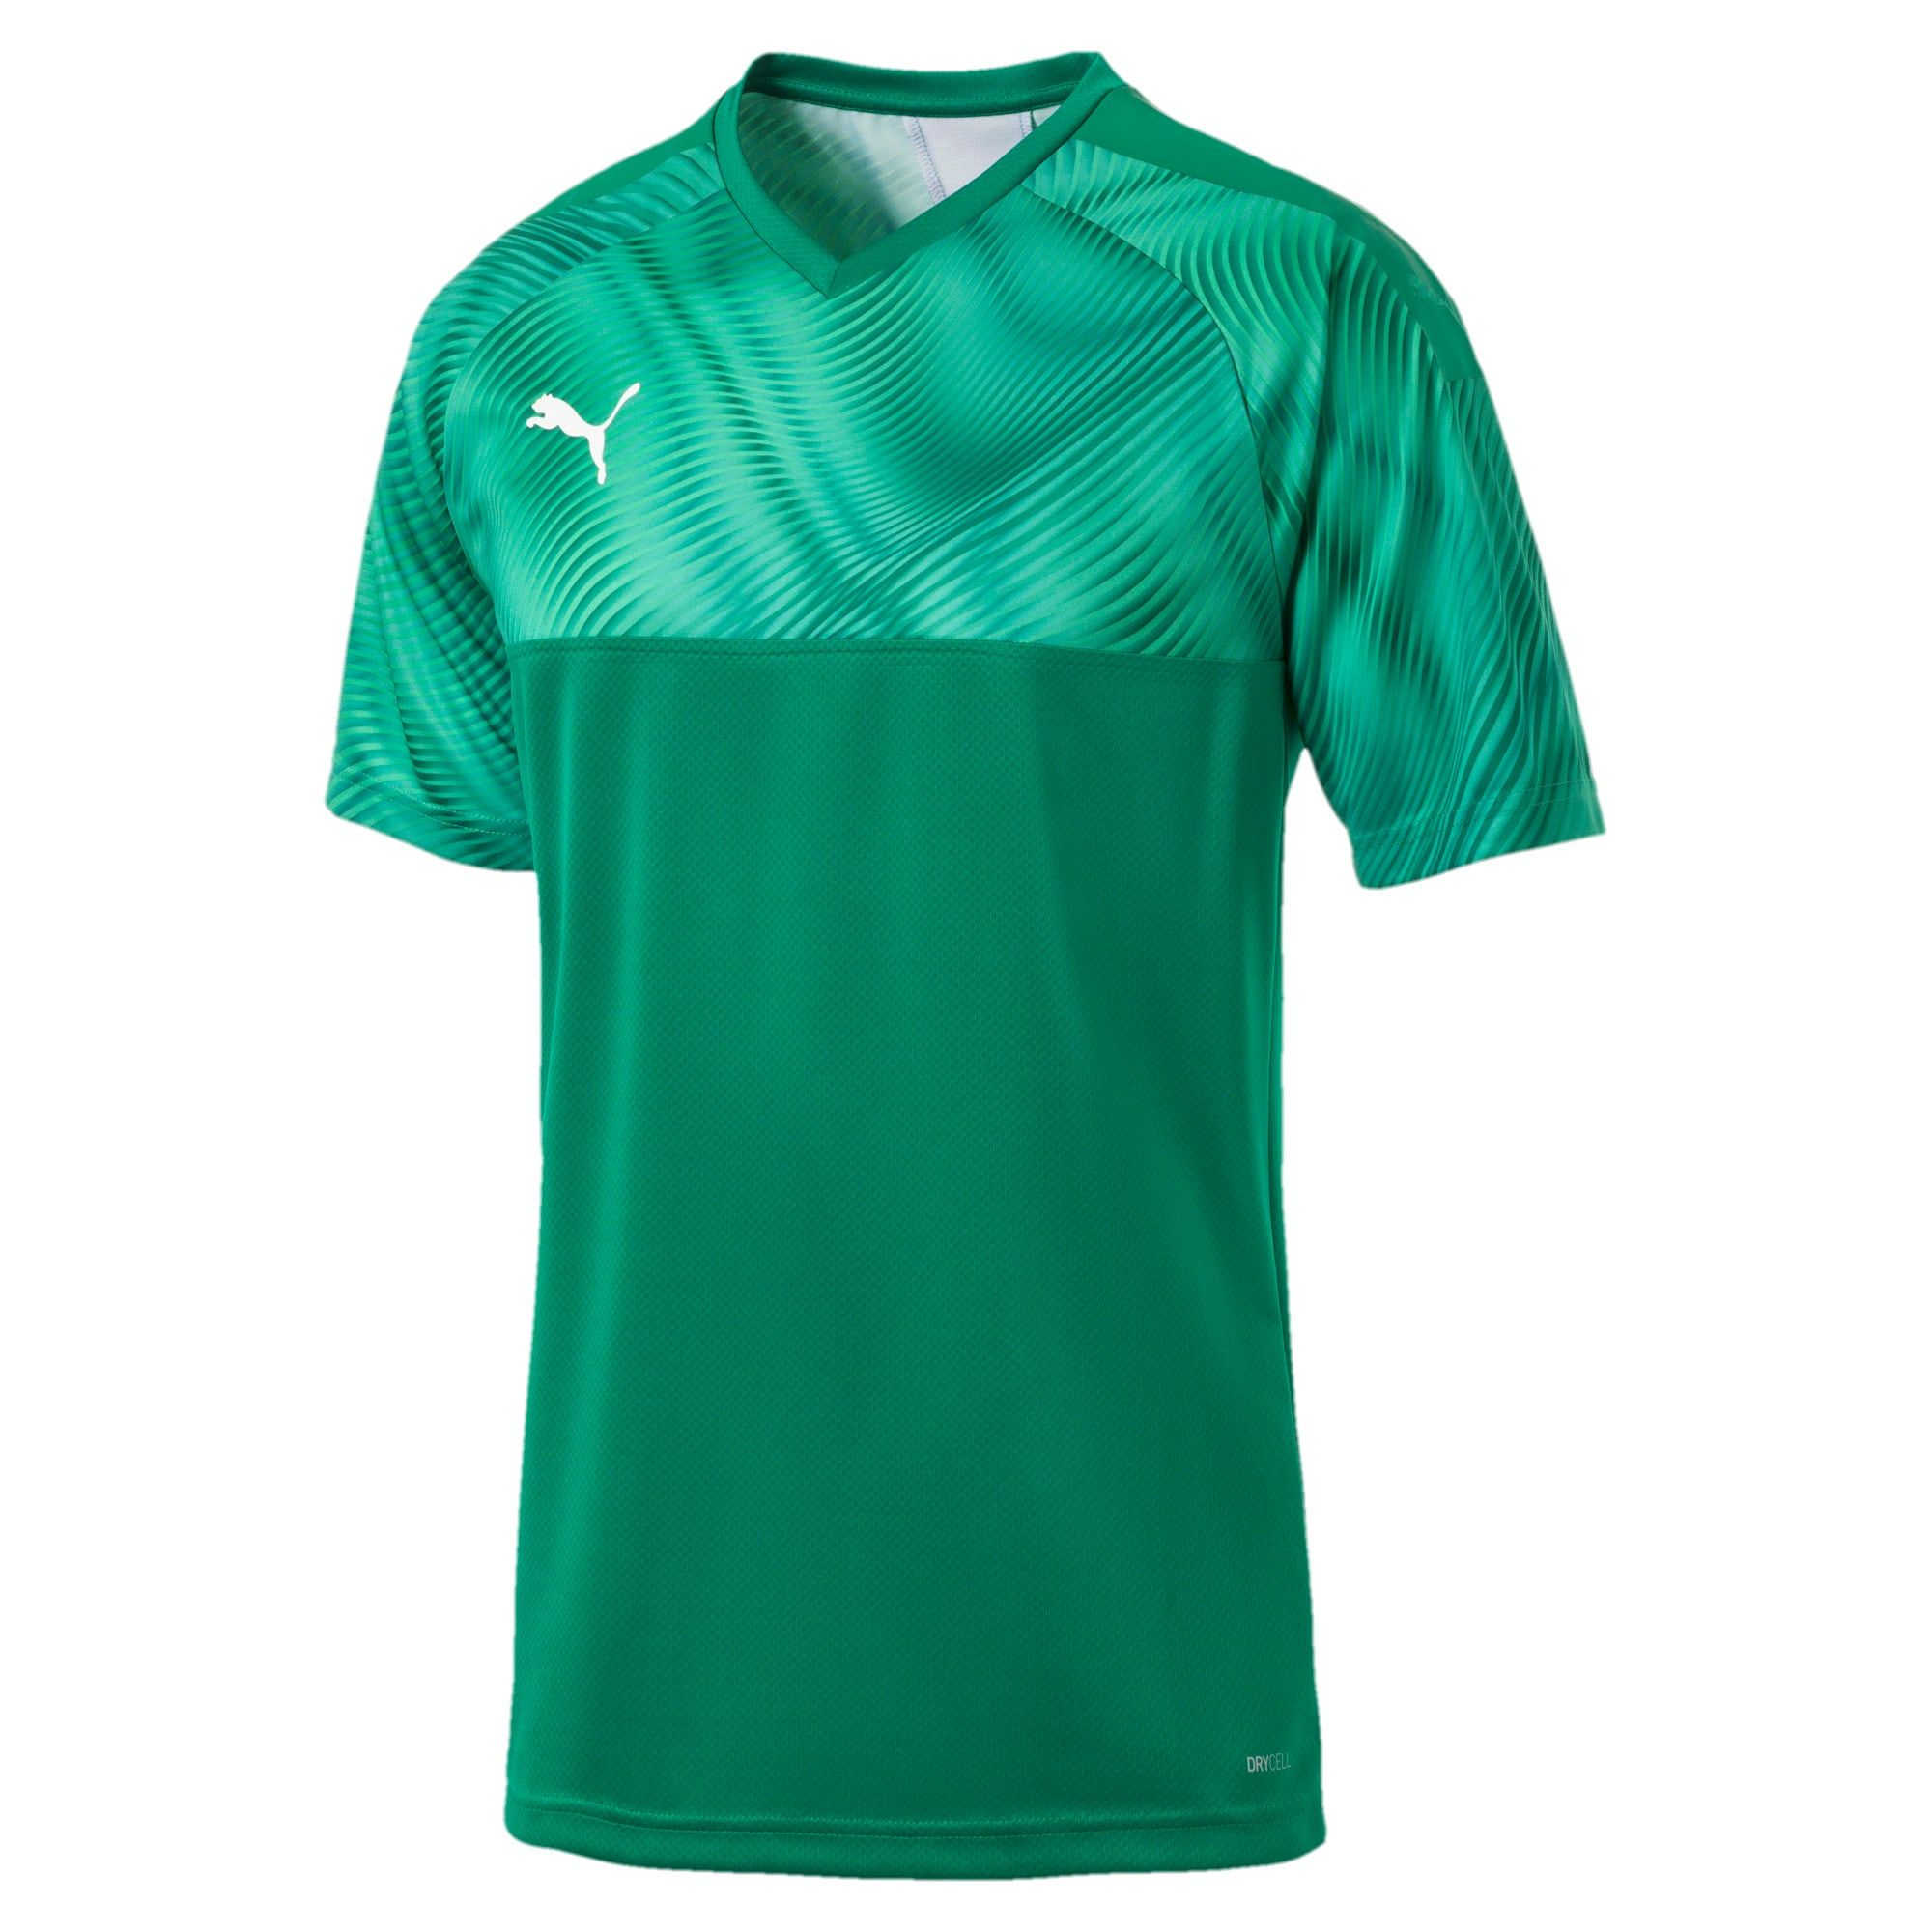 PUMA Cup Men's Football Jersey, Pepper Green/White, size Medium, Clothing